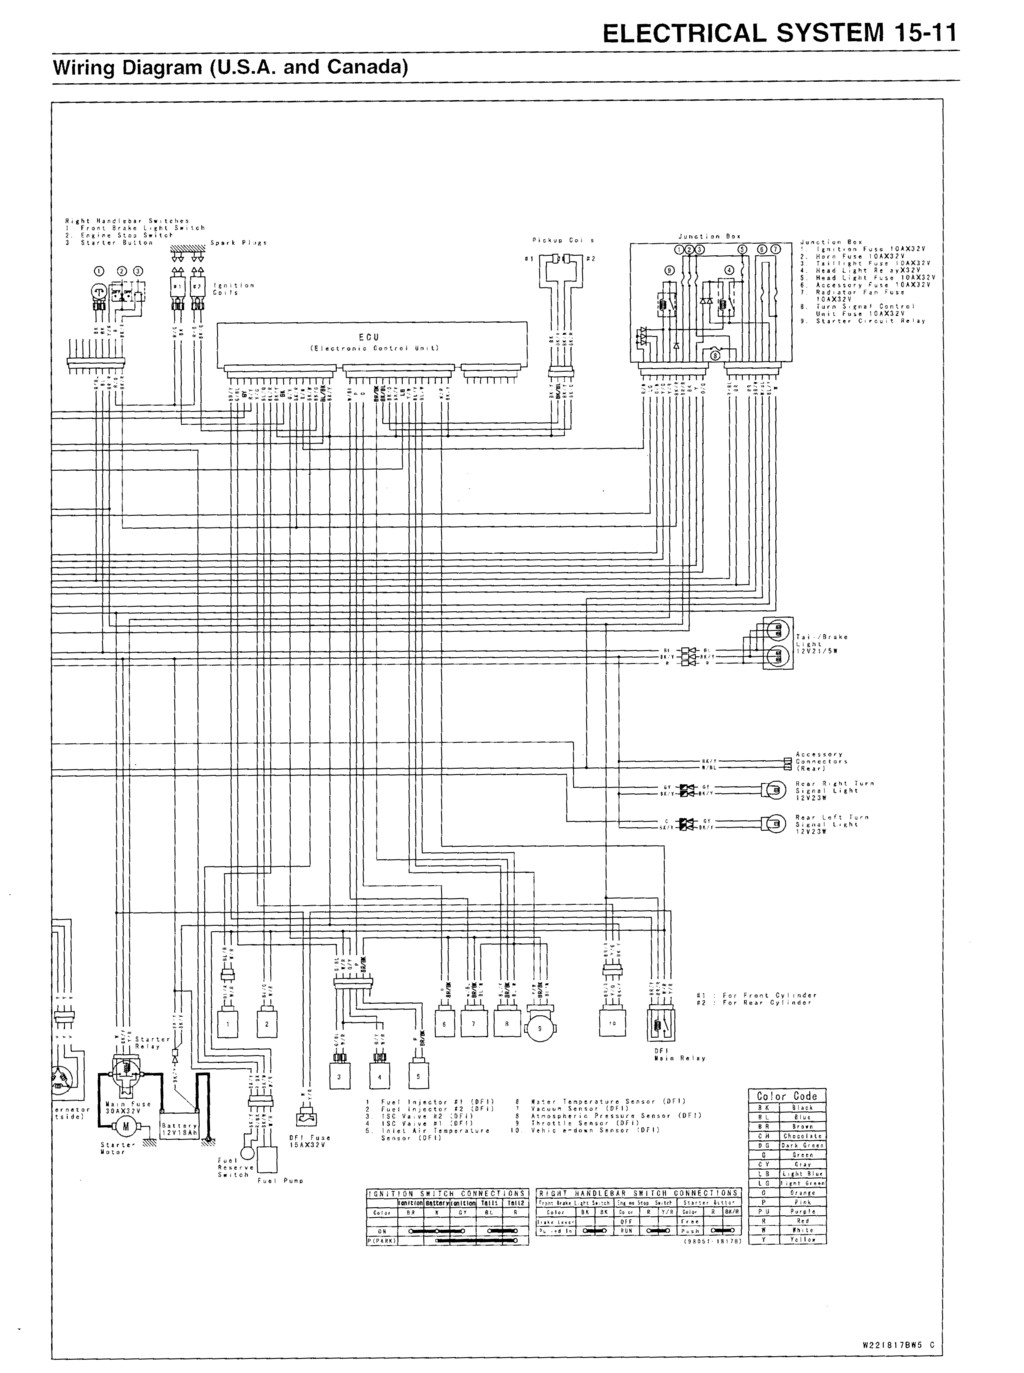 nomad_wiring_diagram_carbed_p2 vulcan wiring diagrams gadget's fixit page Kawasaki Vulcan 1500 Wiring Diagram at nearapp.co